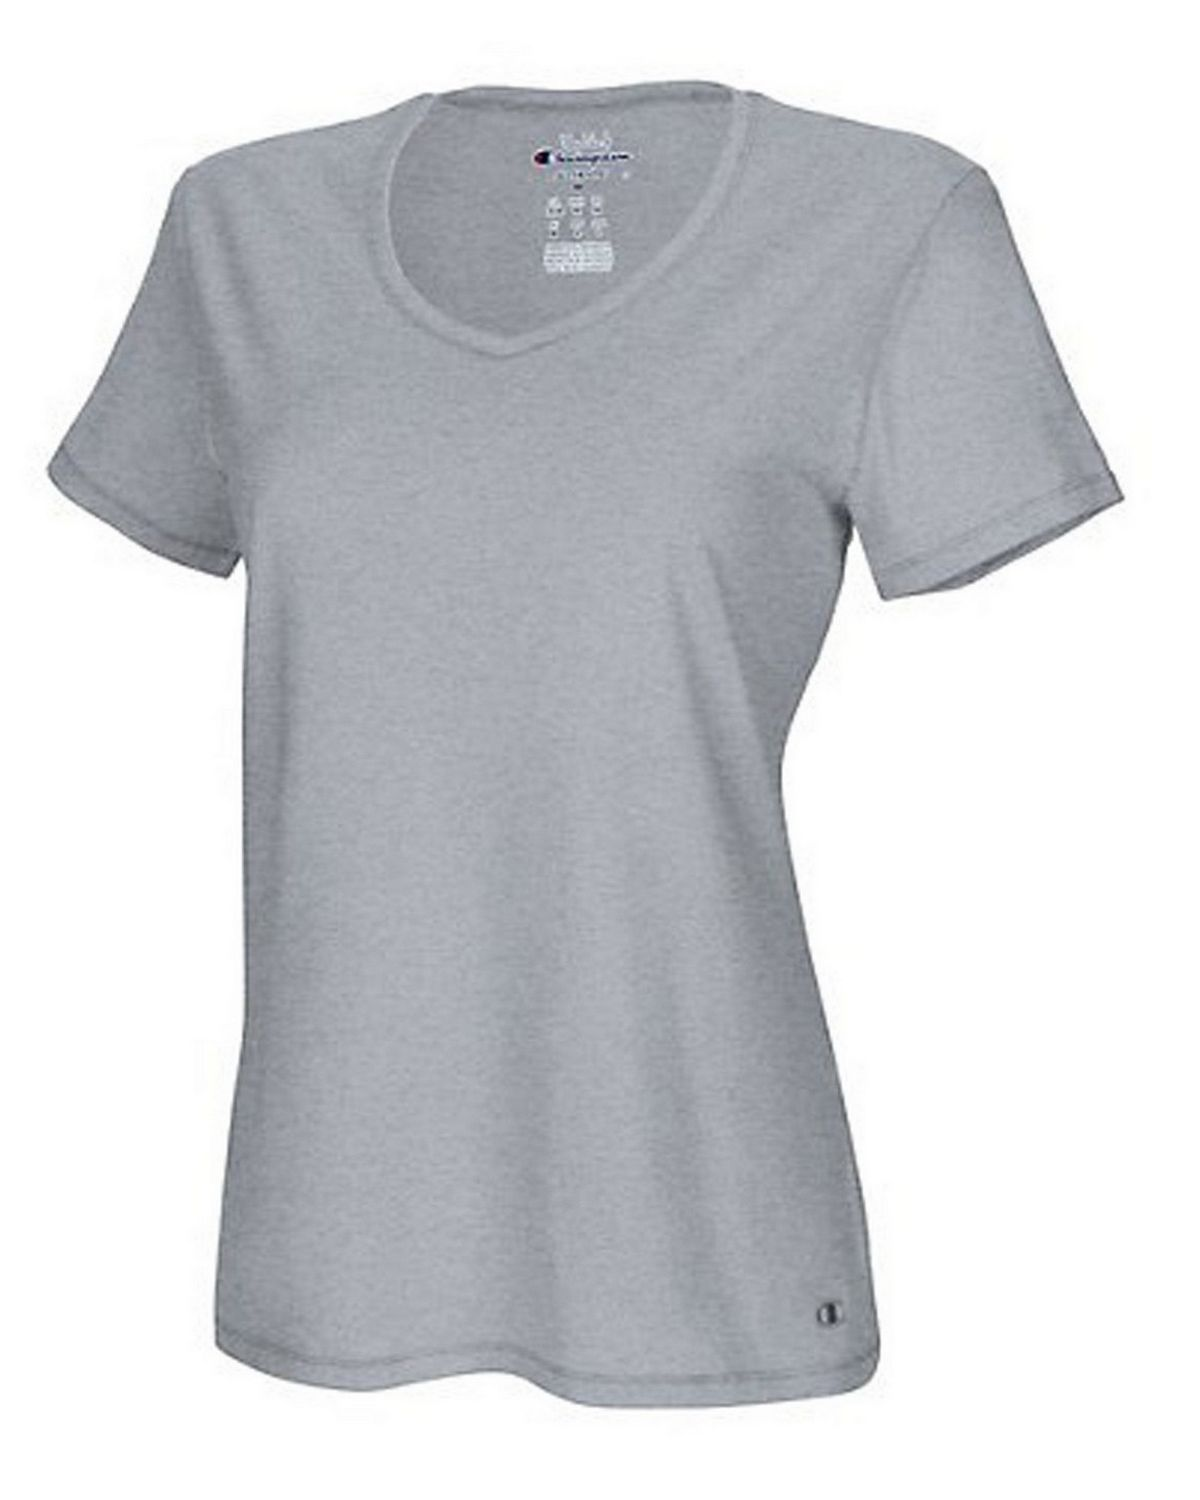 Champion 8875 Authentic Womens Jersey Tee - Oxford Grey - L 8875